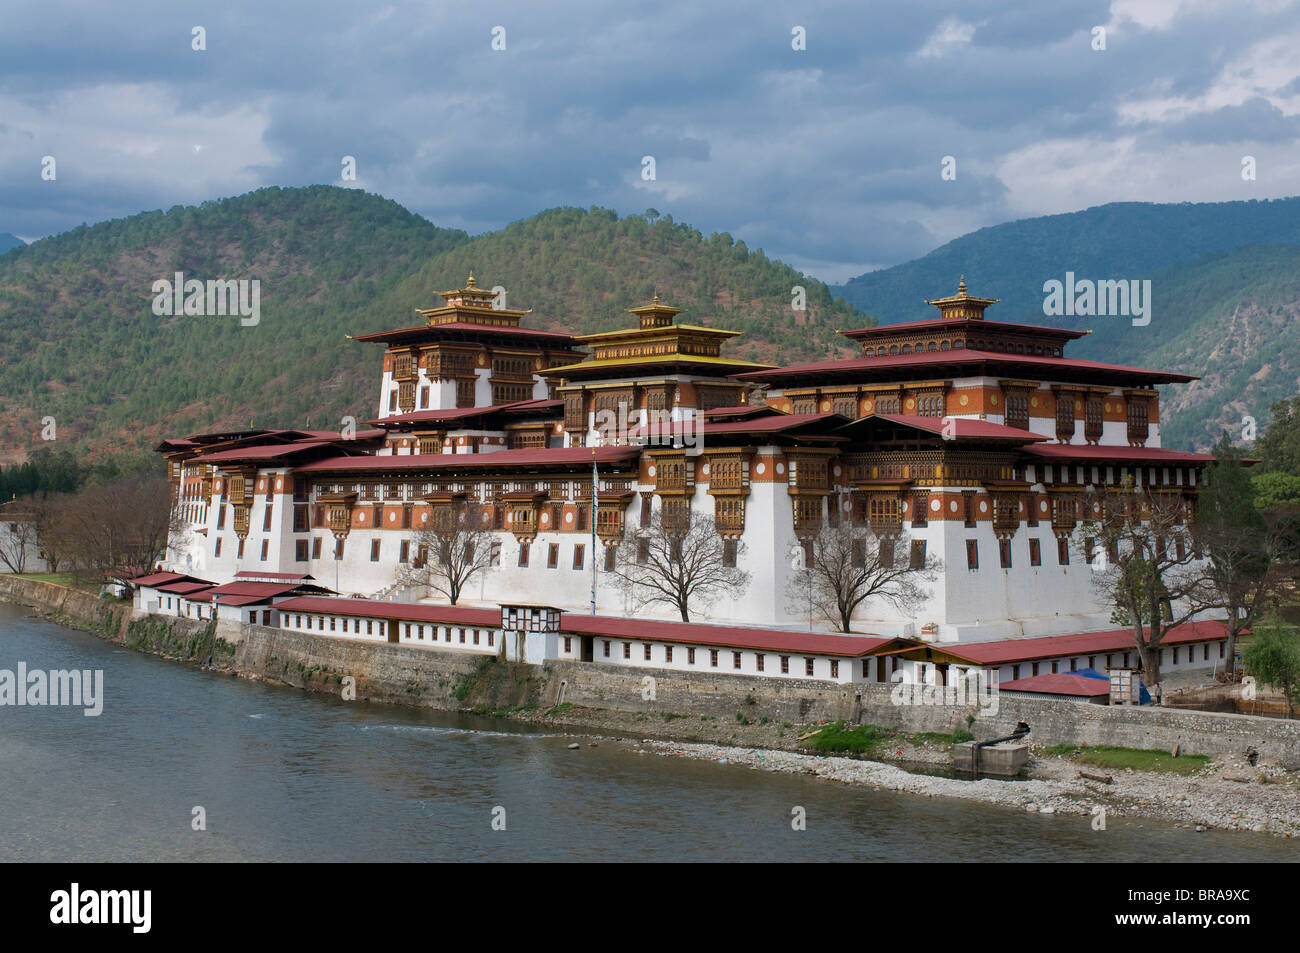 The old tsong, an old castle of Punakha, Bhutan. Asia - Stock Image